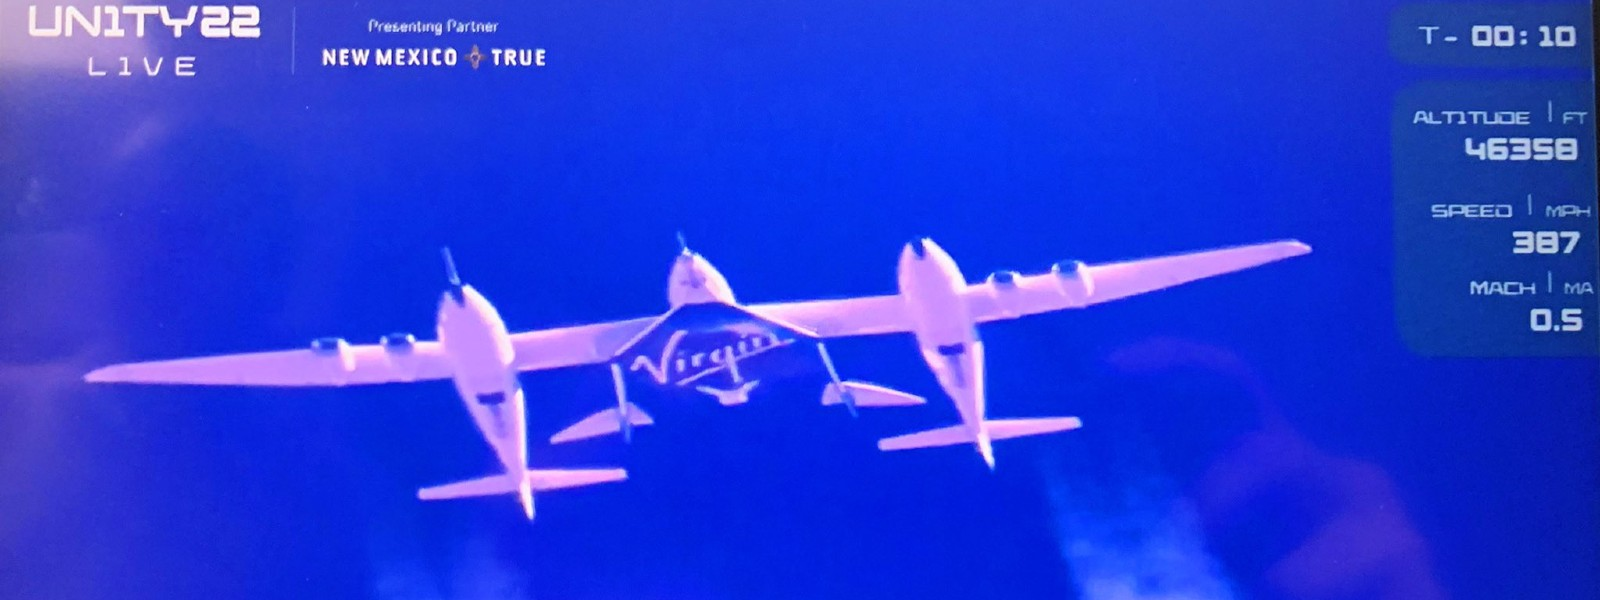 Richard Branson, crew go to space and back on Virgin Galactic spaceship